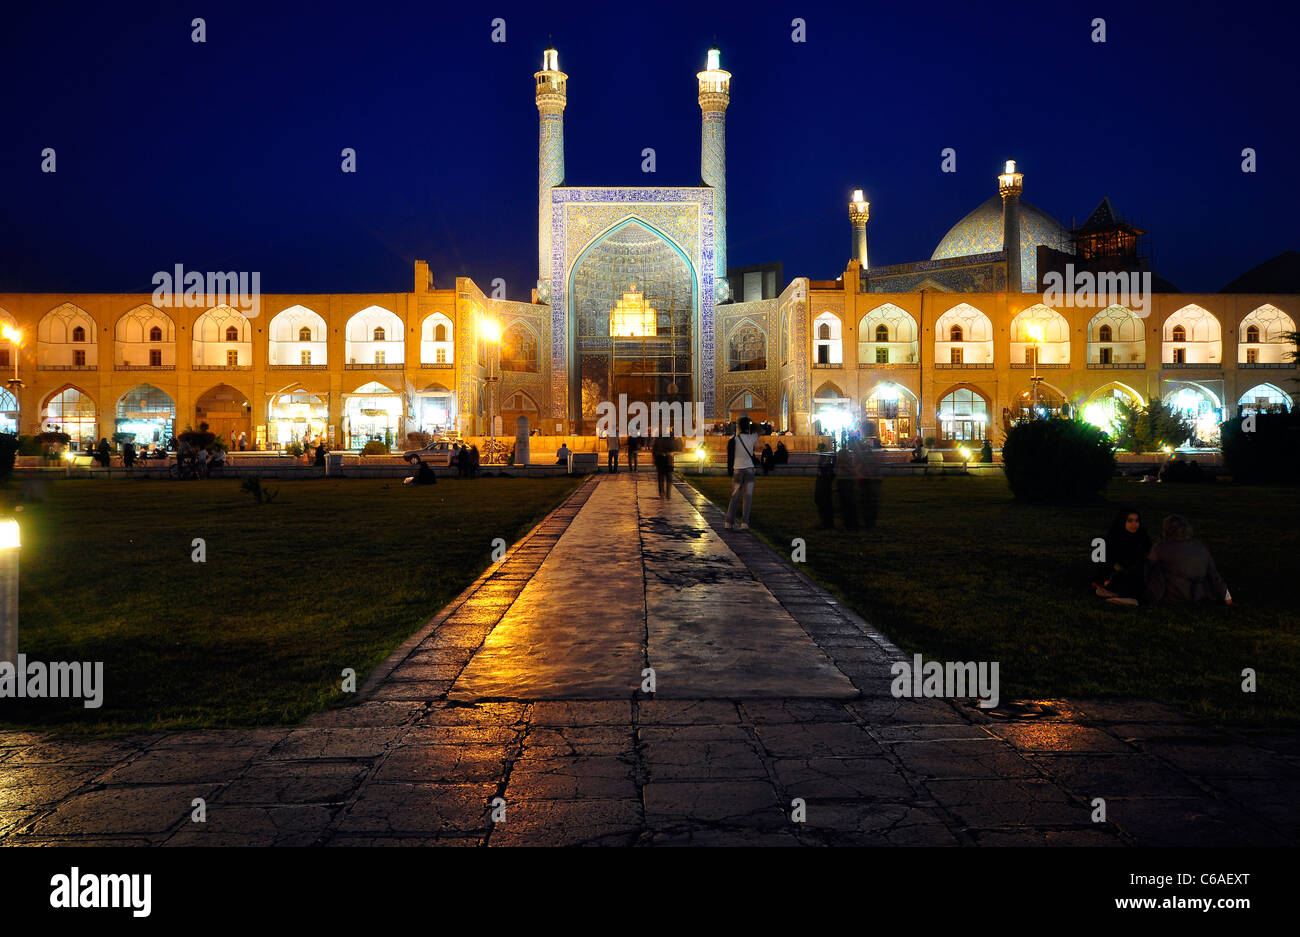 Night shot from Imam Mosque (Shah Mosque) in naghse Jahan Square (Imam Square), Isfaha Iran. - Stock Image